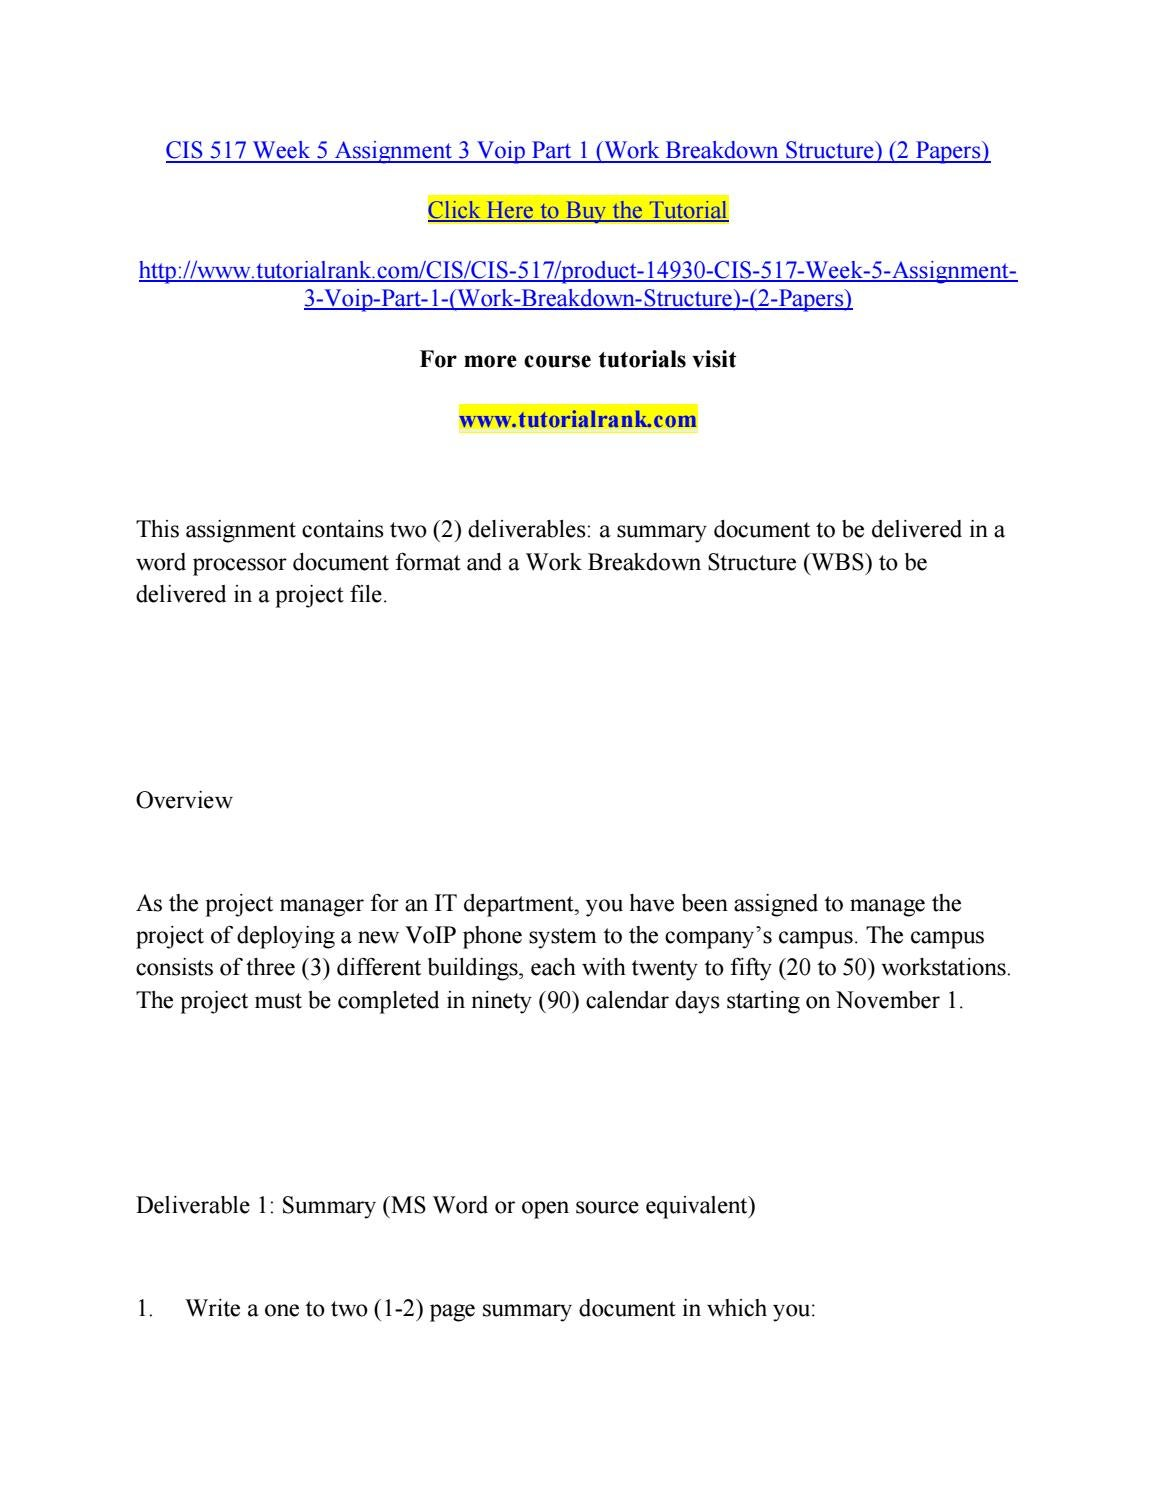 Cis 517 Week 5 Assignment 3 Voip Part 1 Work Breakdown Structure An Overview 2 Papers By Jabbaree32 Issuu